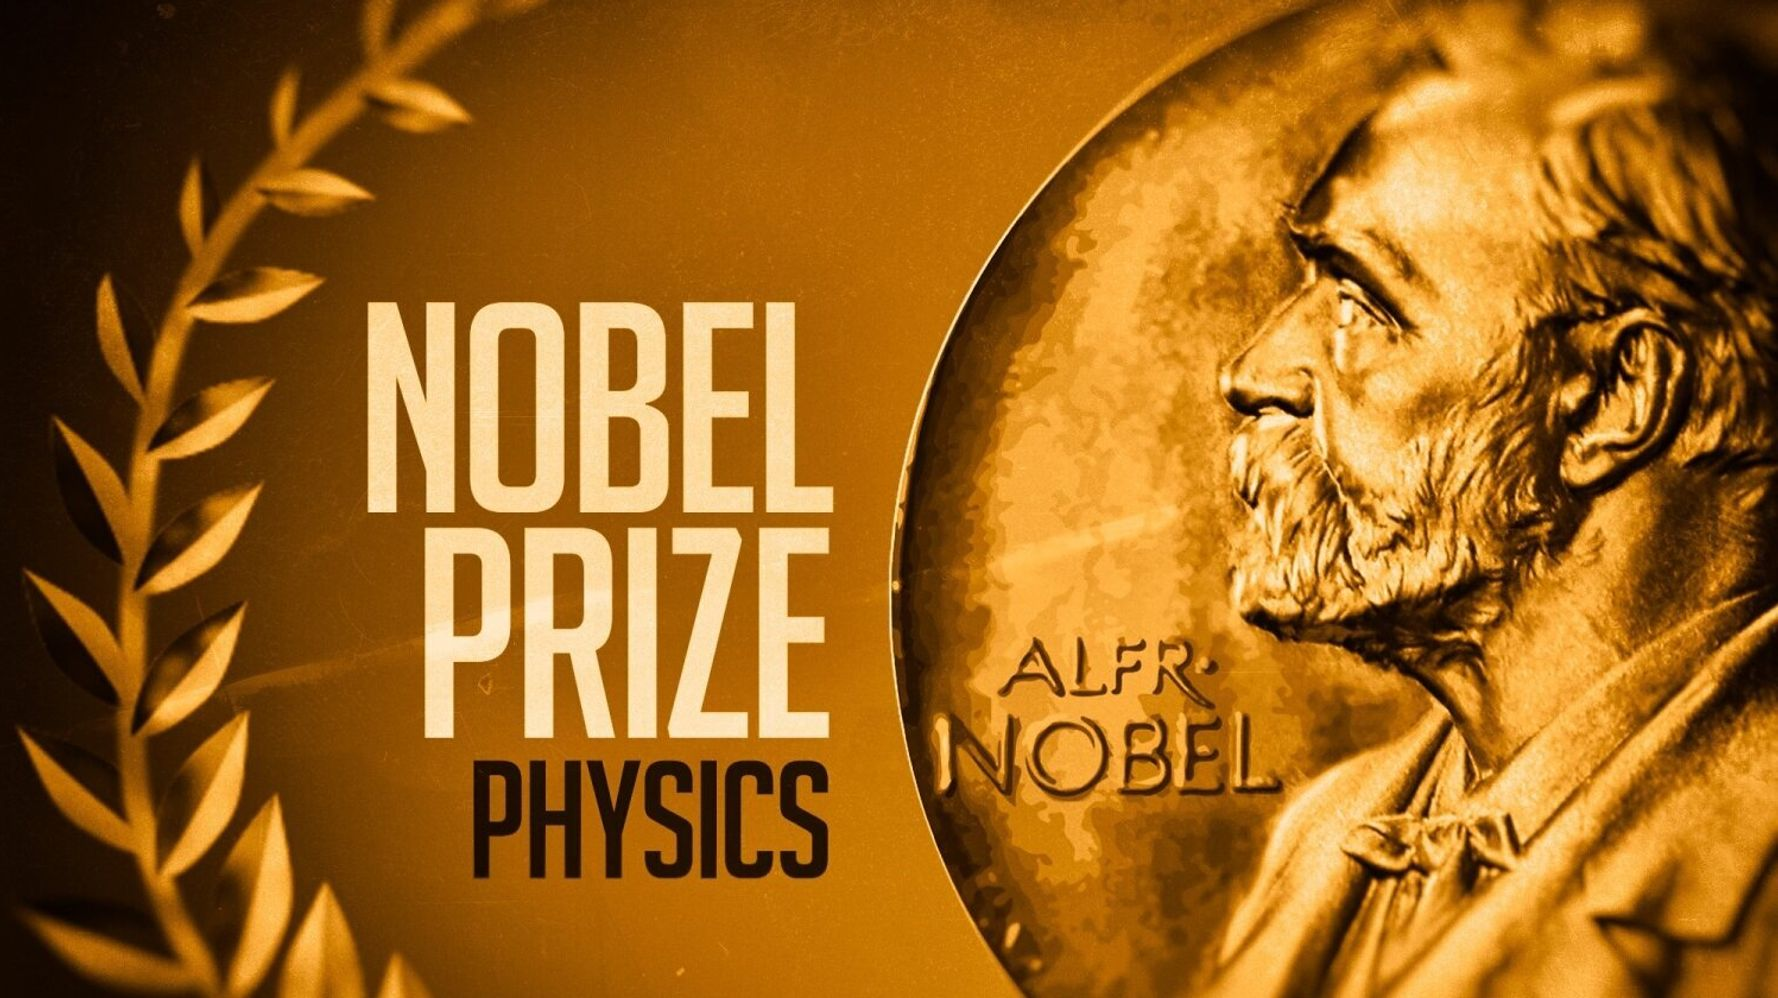 Westlake Legal Group 5d9c1bd320000069054f1474 3 Scientists Win Nobel Prize In Physics For Work That Examines The Evolution Of The Universe